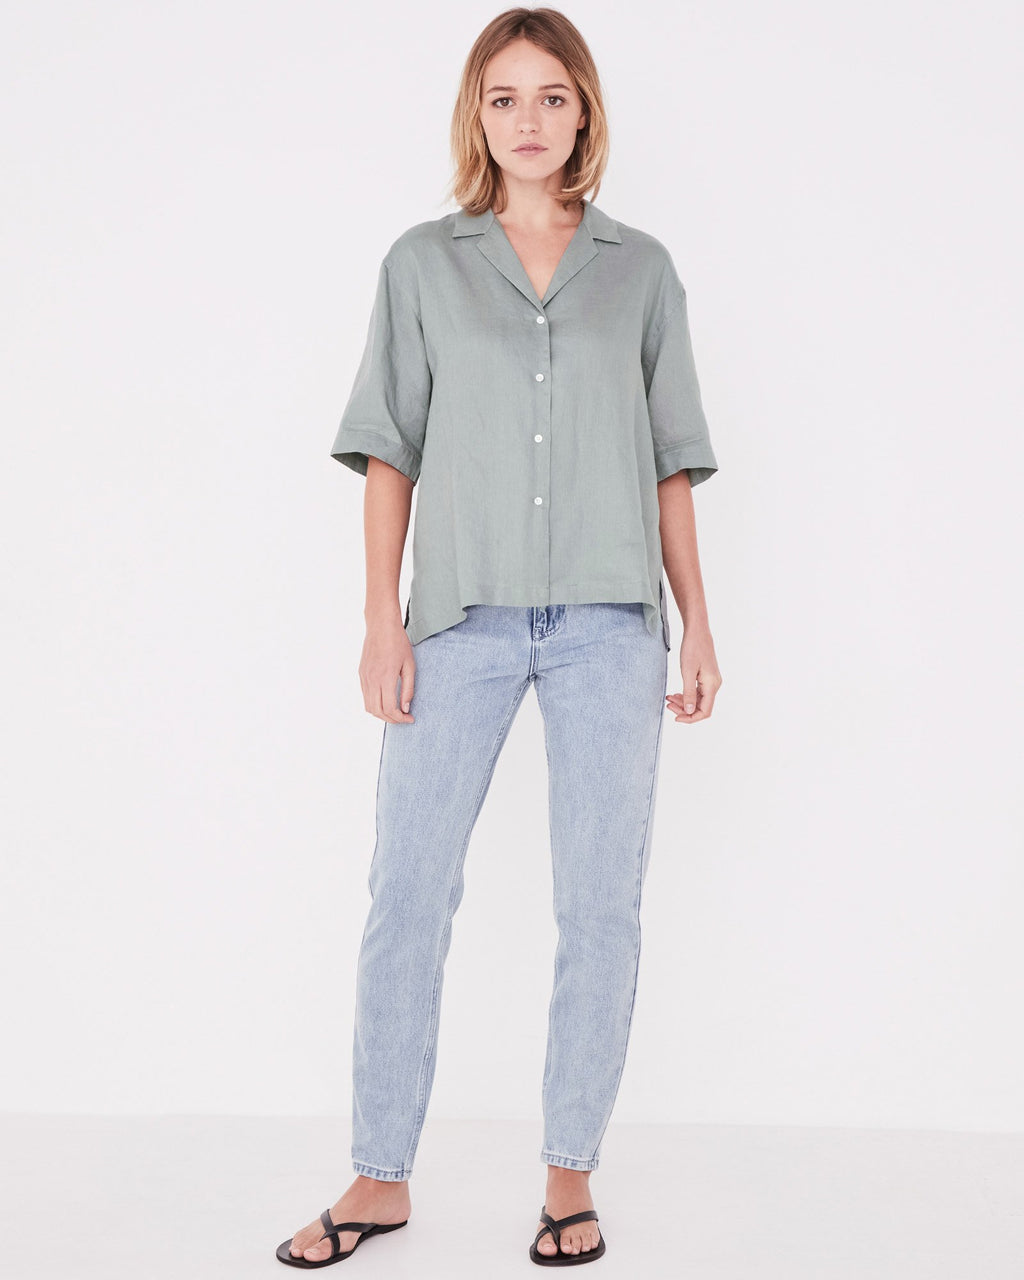 Assembly Label Kamala Short Sleeve Shirt - Mineral Green